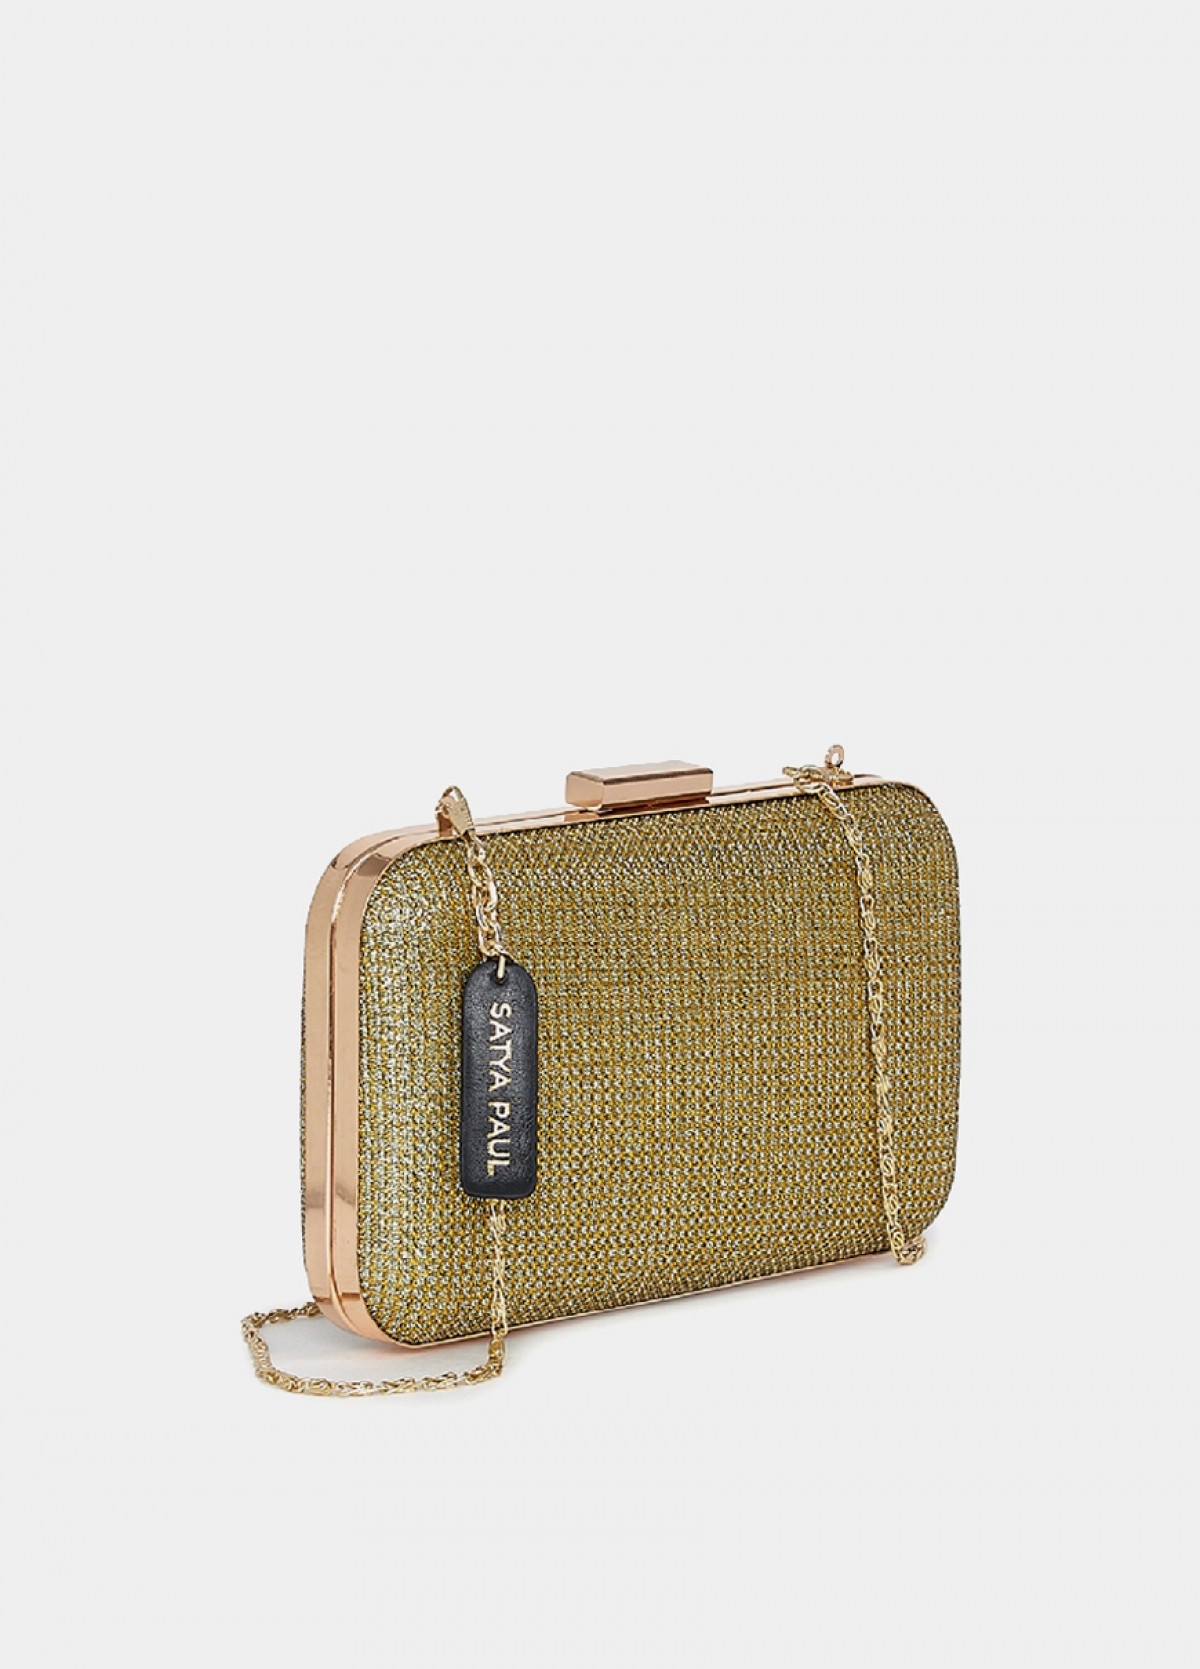 The Gold Embellished Clutch